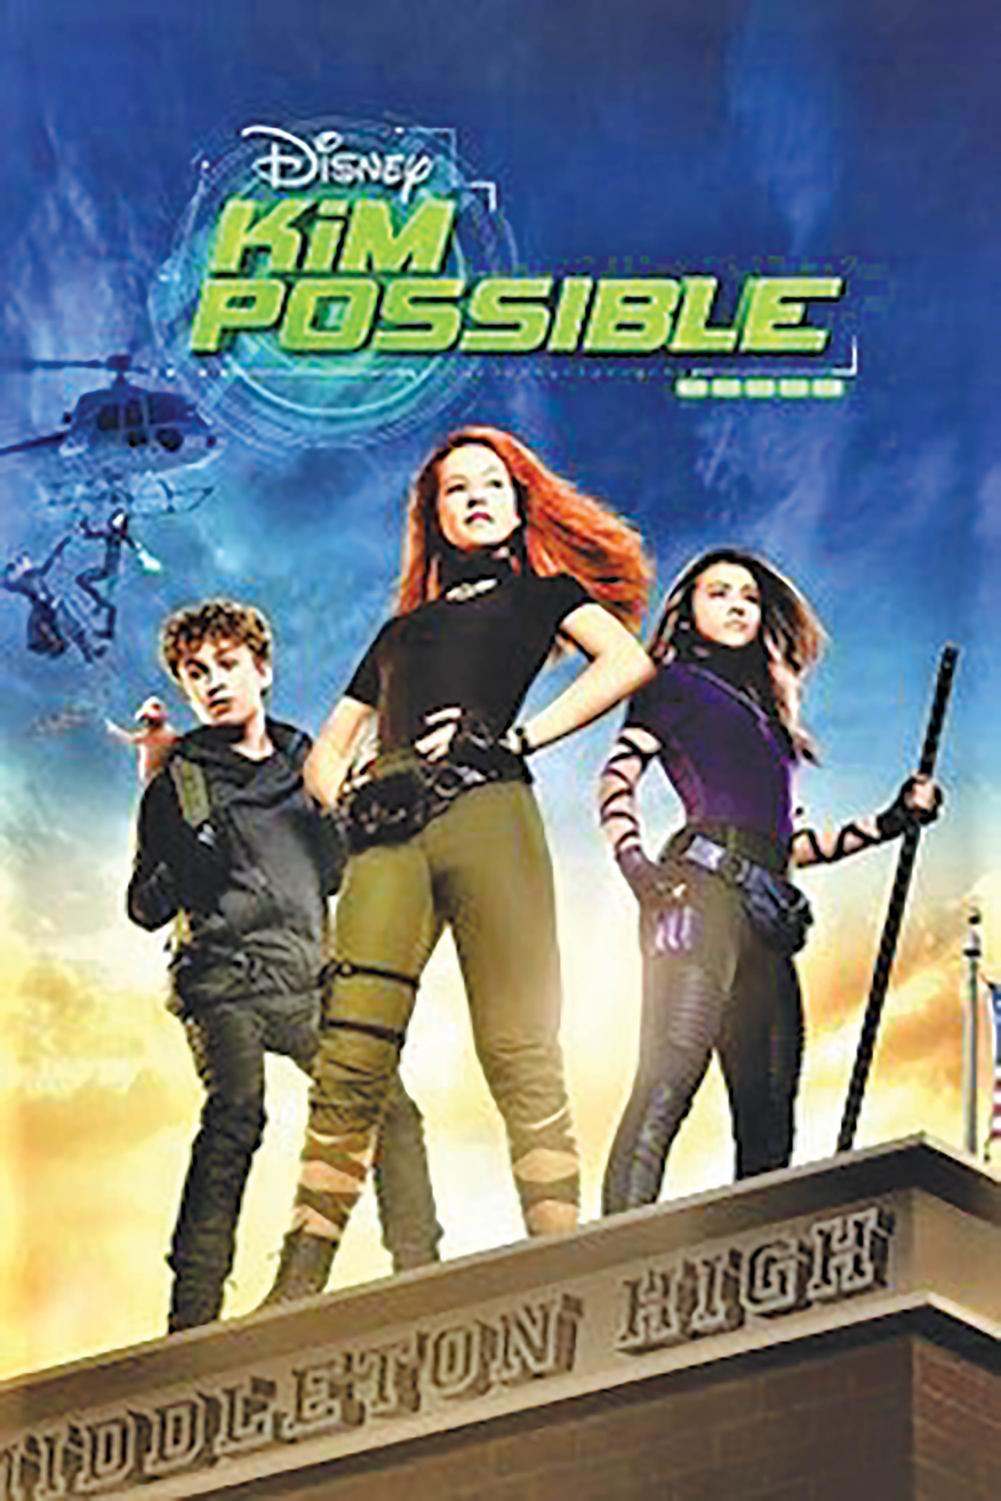 'Kim Possible' is the first cartoon to live-action adaptation on Disney Channel.